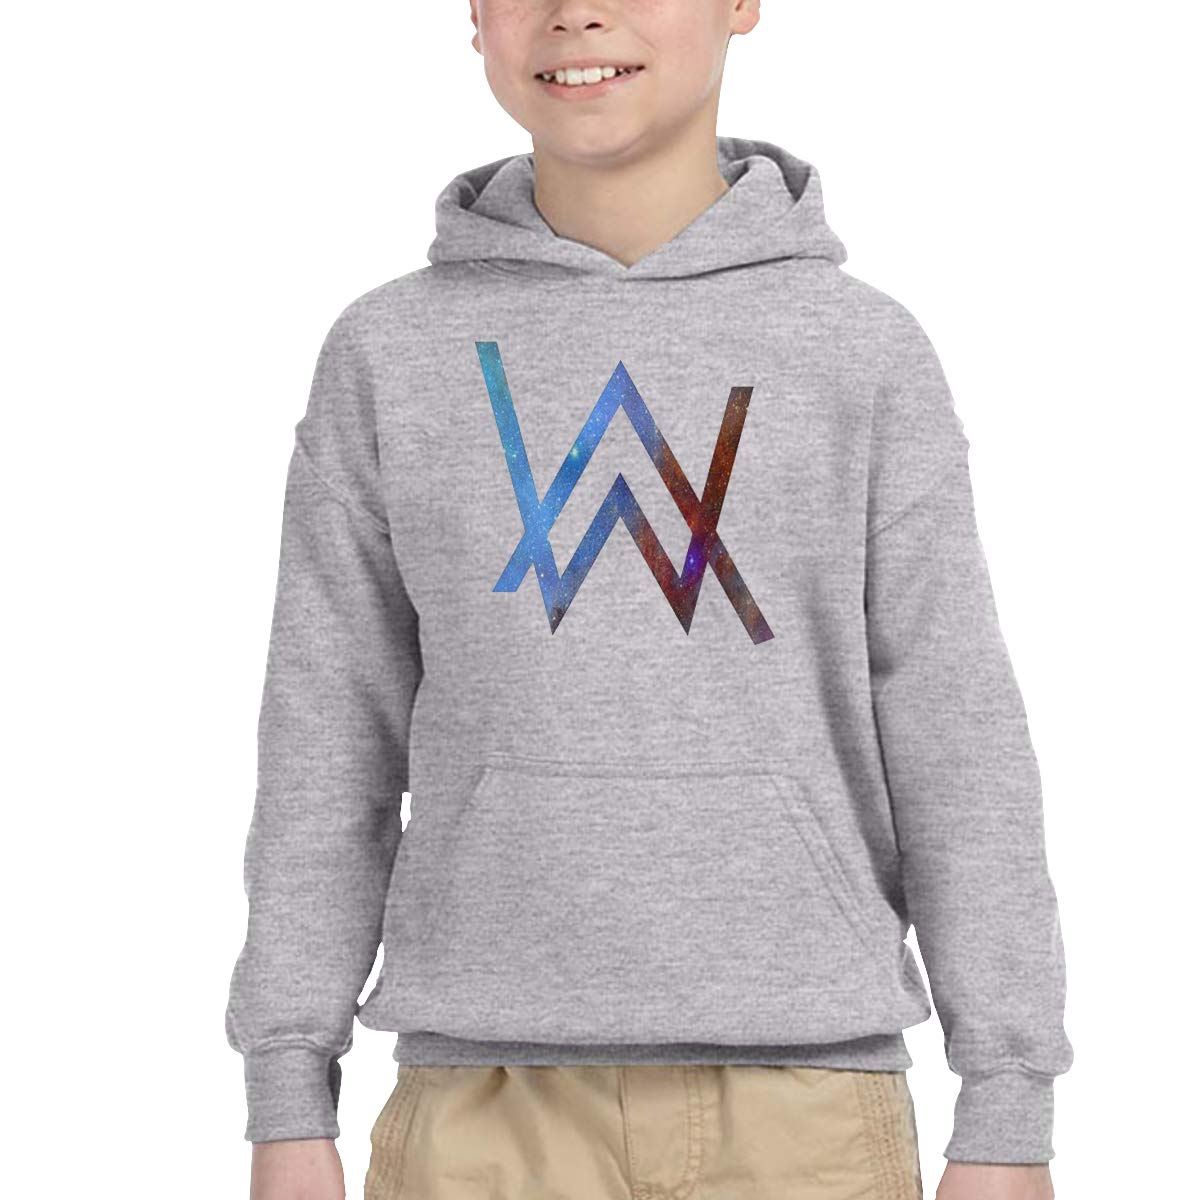 DAWEIshop 2-6 Year Old Childrens Hooded Pocket Sweater Alan Walker New Personality Cool Trend Creation Gray